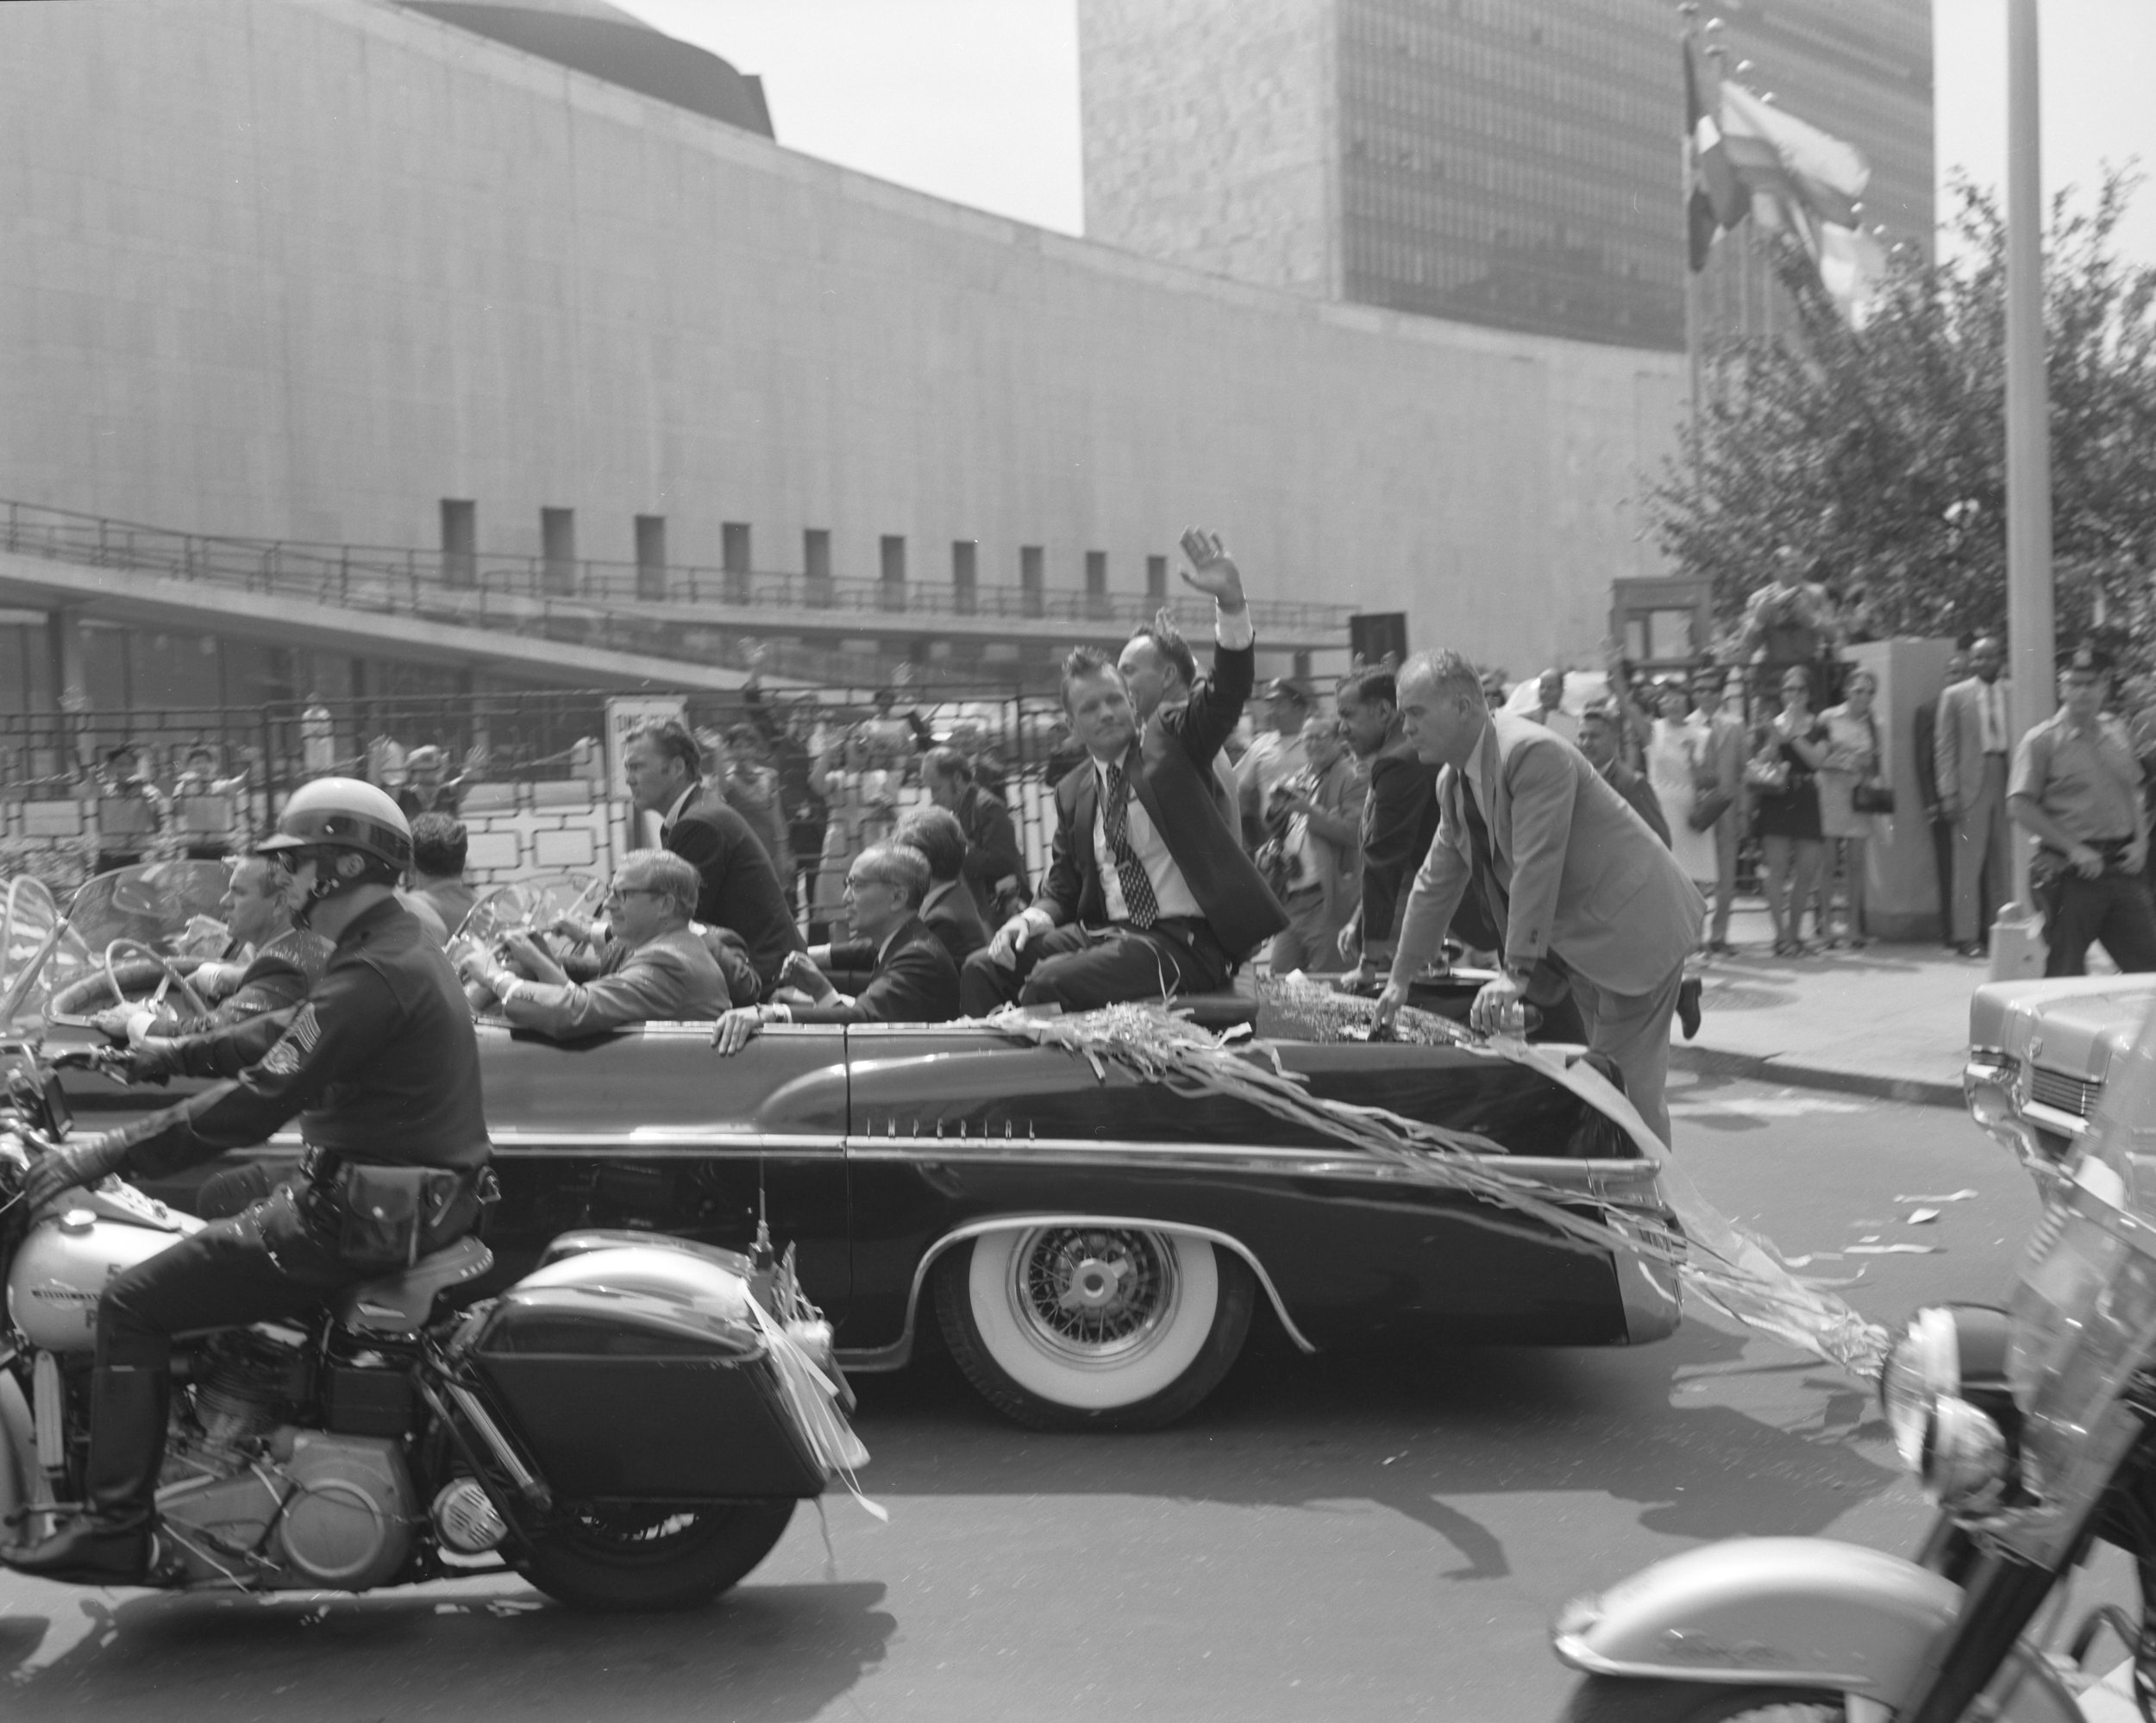 The Apollo 11 motorcade arrives at the United Nations for a brief ceremony, August 13, 1969. NYPD Collection, NYC Municipal Archives.